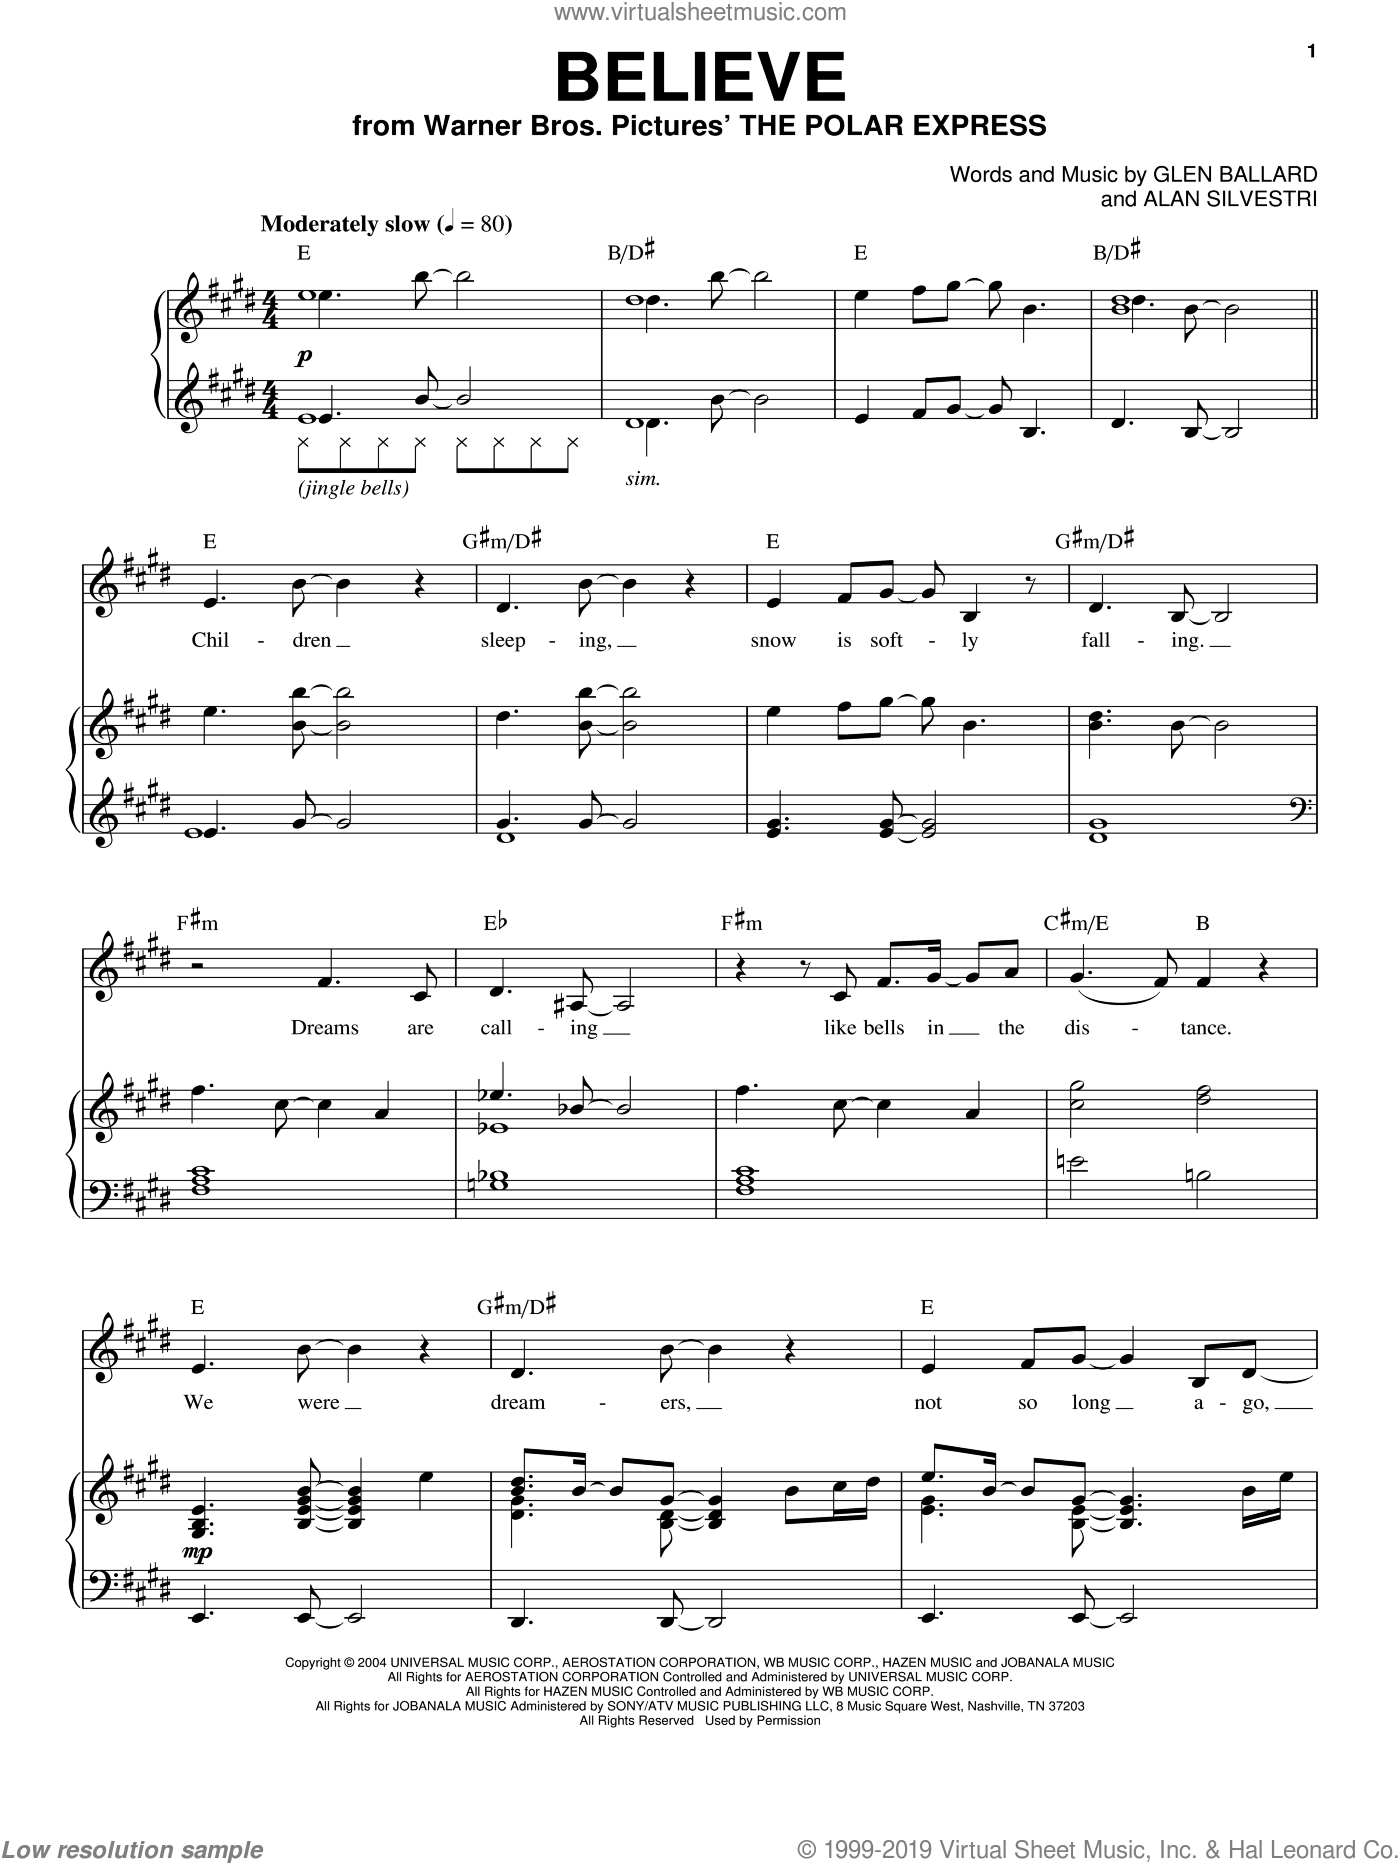 Believe sheet music for voice and piano by Glen Ballard